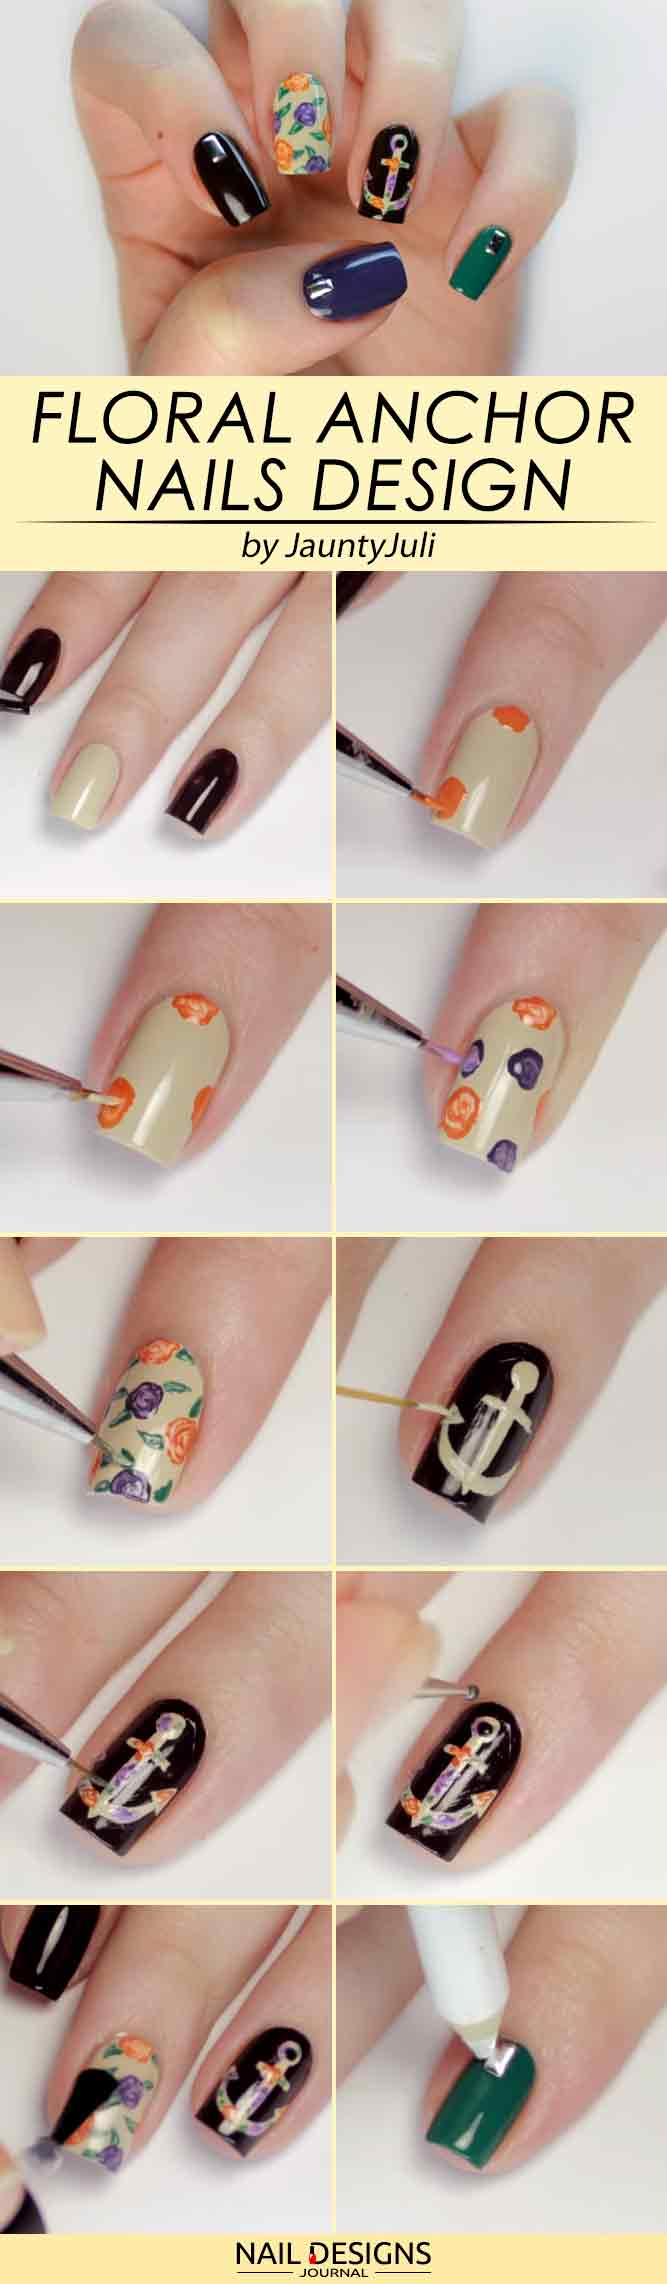 Beautiful Floral Anchor Nails Art #anchornails #flowernails